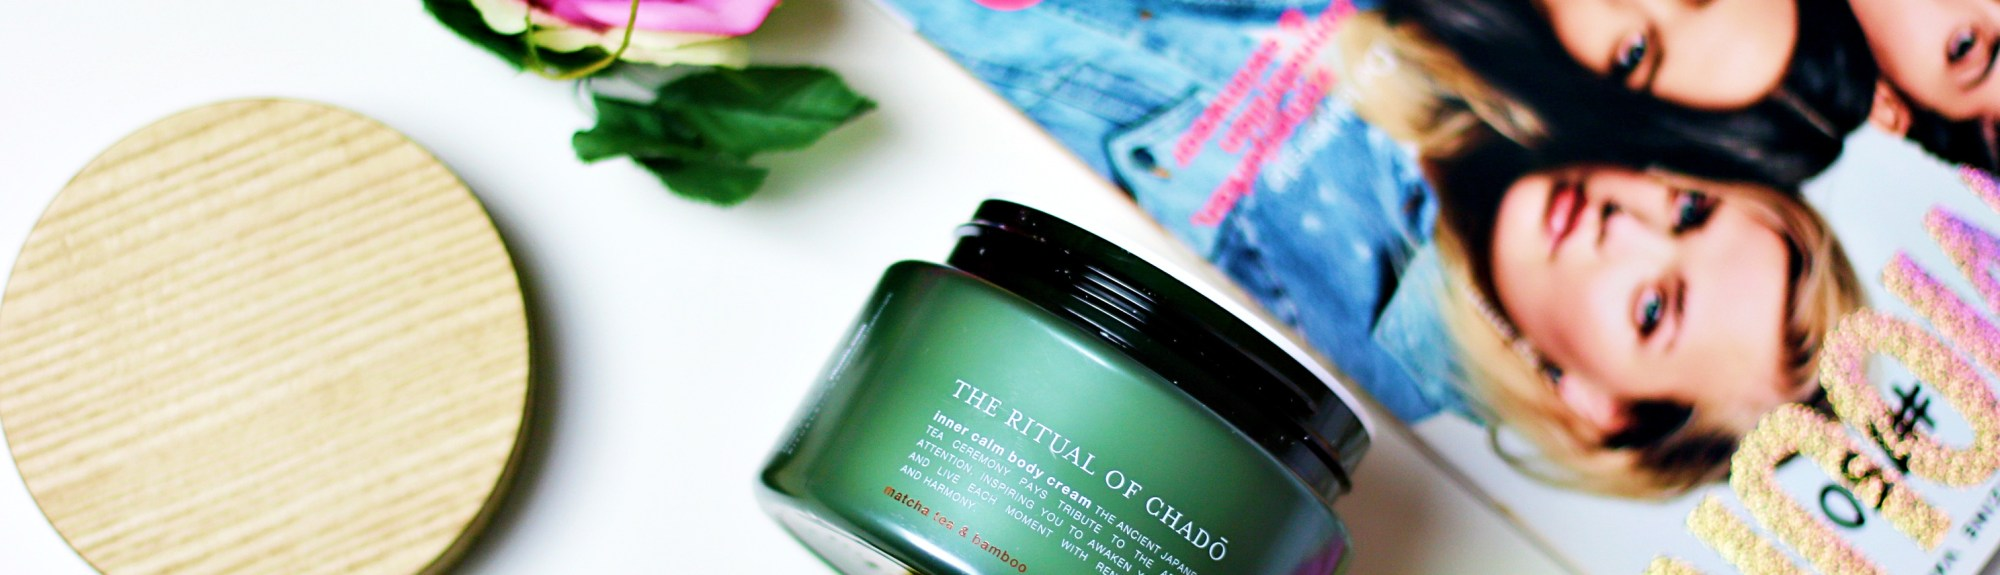 Rituals The Ritual Of Chado Body Cream